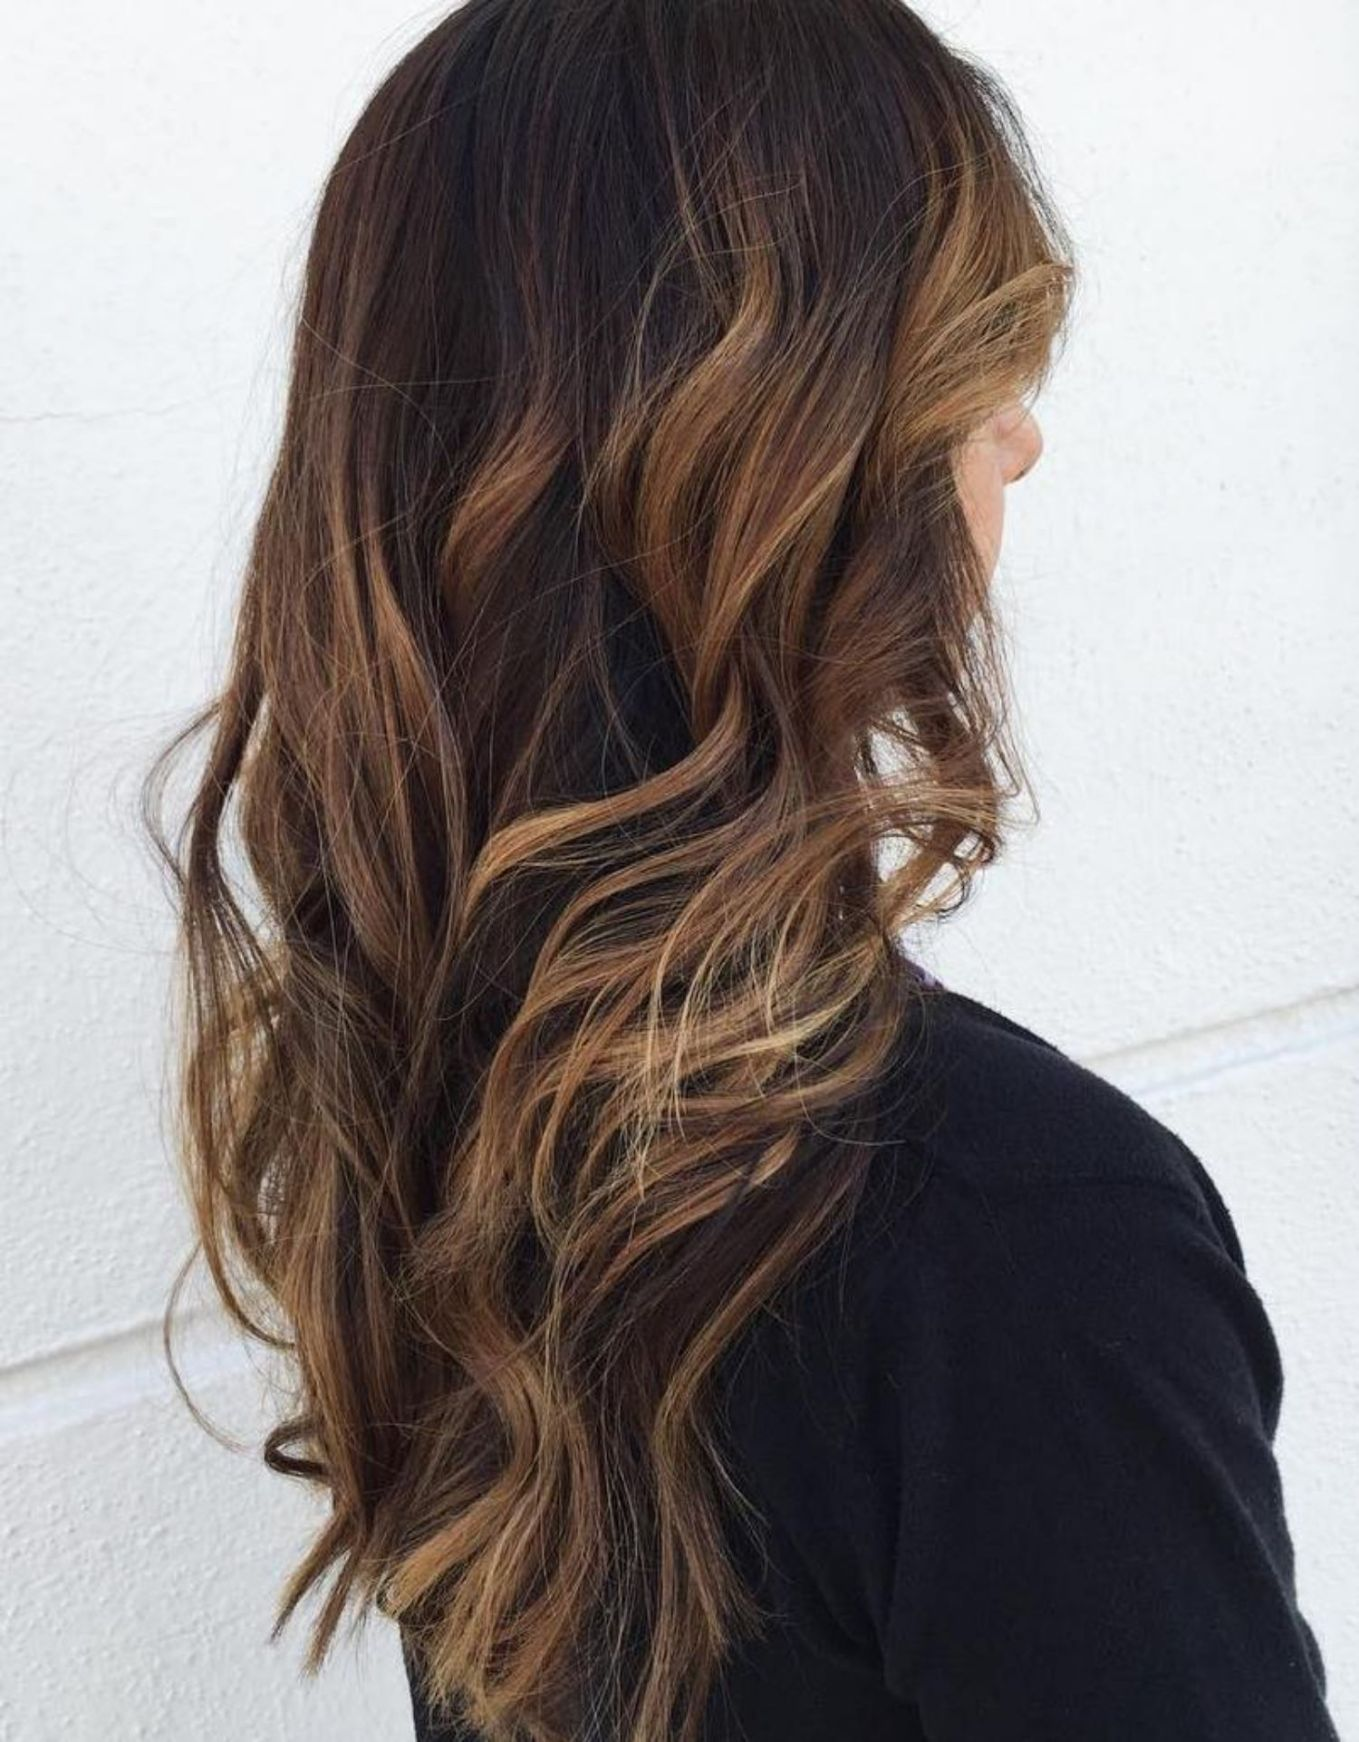 60 Hairstyles Featuring Dark Brown Hair With Highlights Hair Highlights Dark Hair With Highlights Brown Hair With Highlights